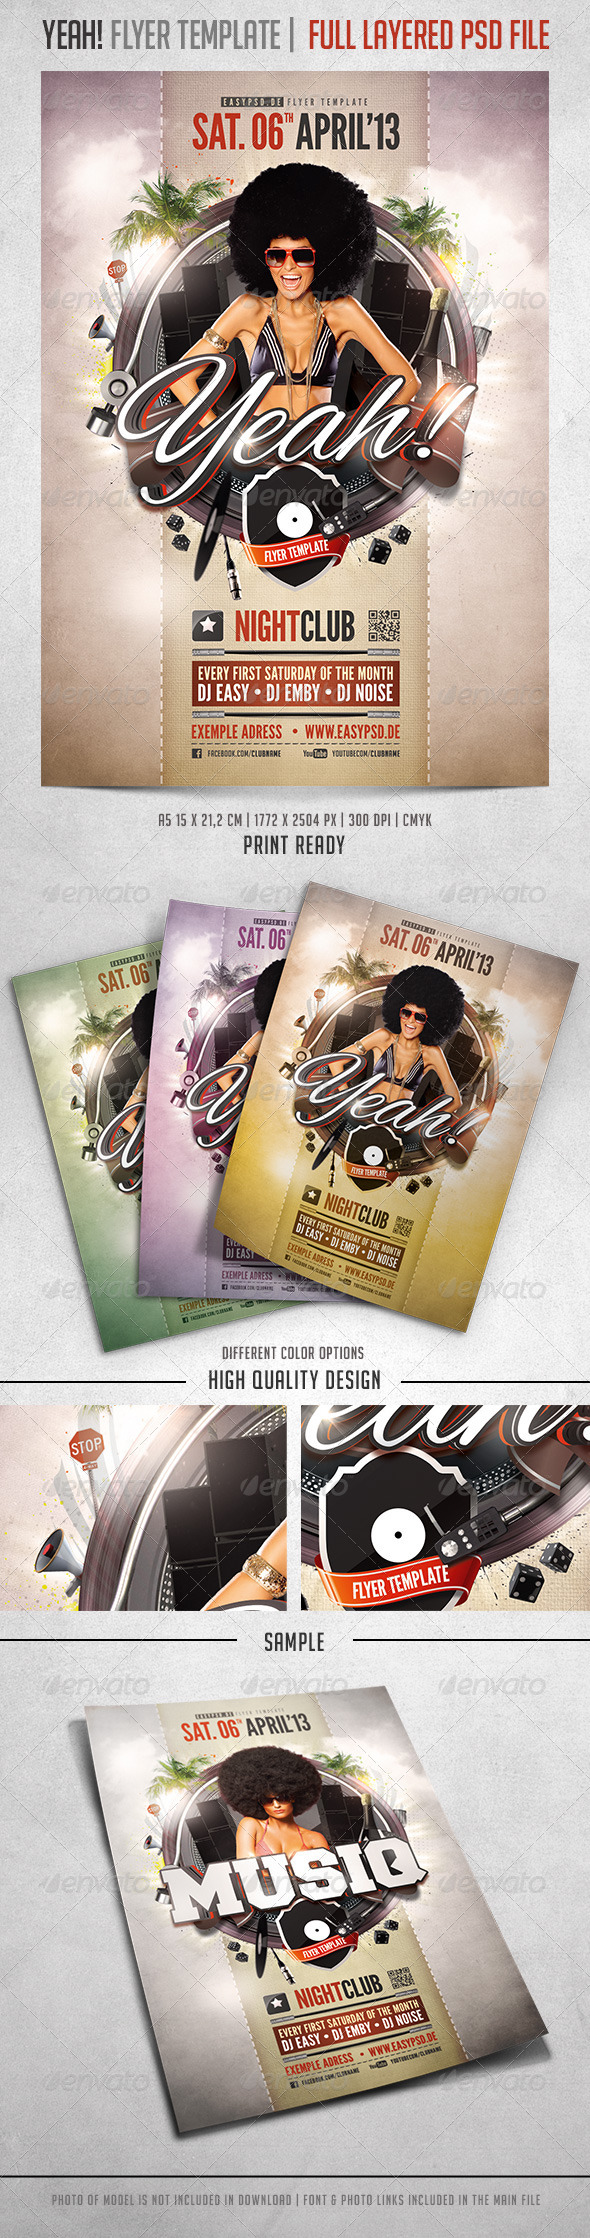 GraphicRiver Yeah Flyer Template 4099701